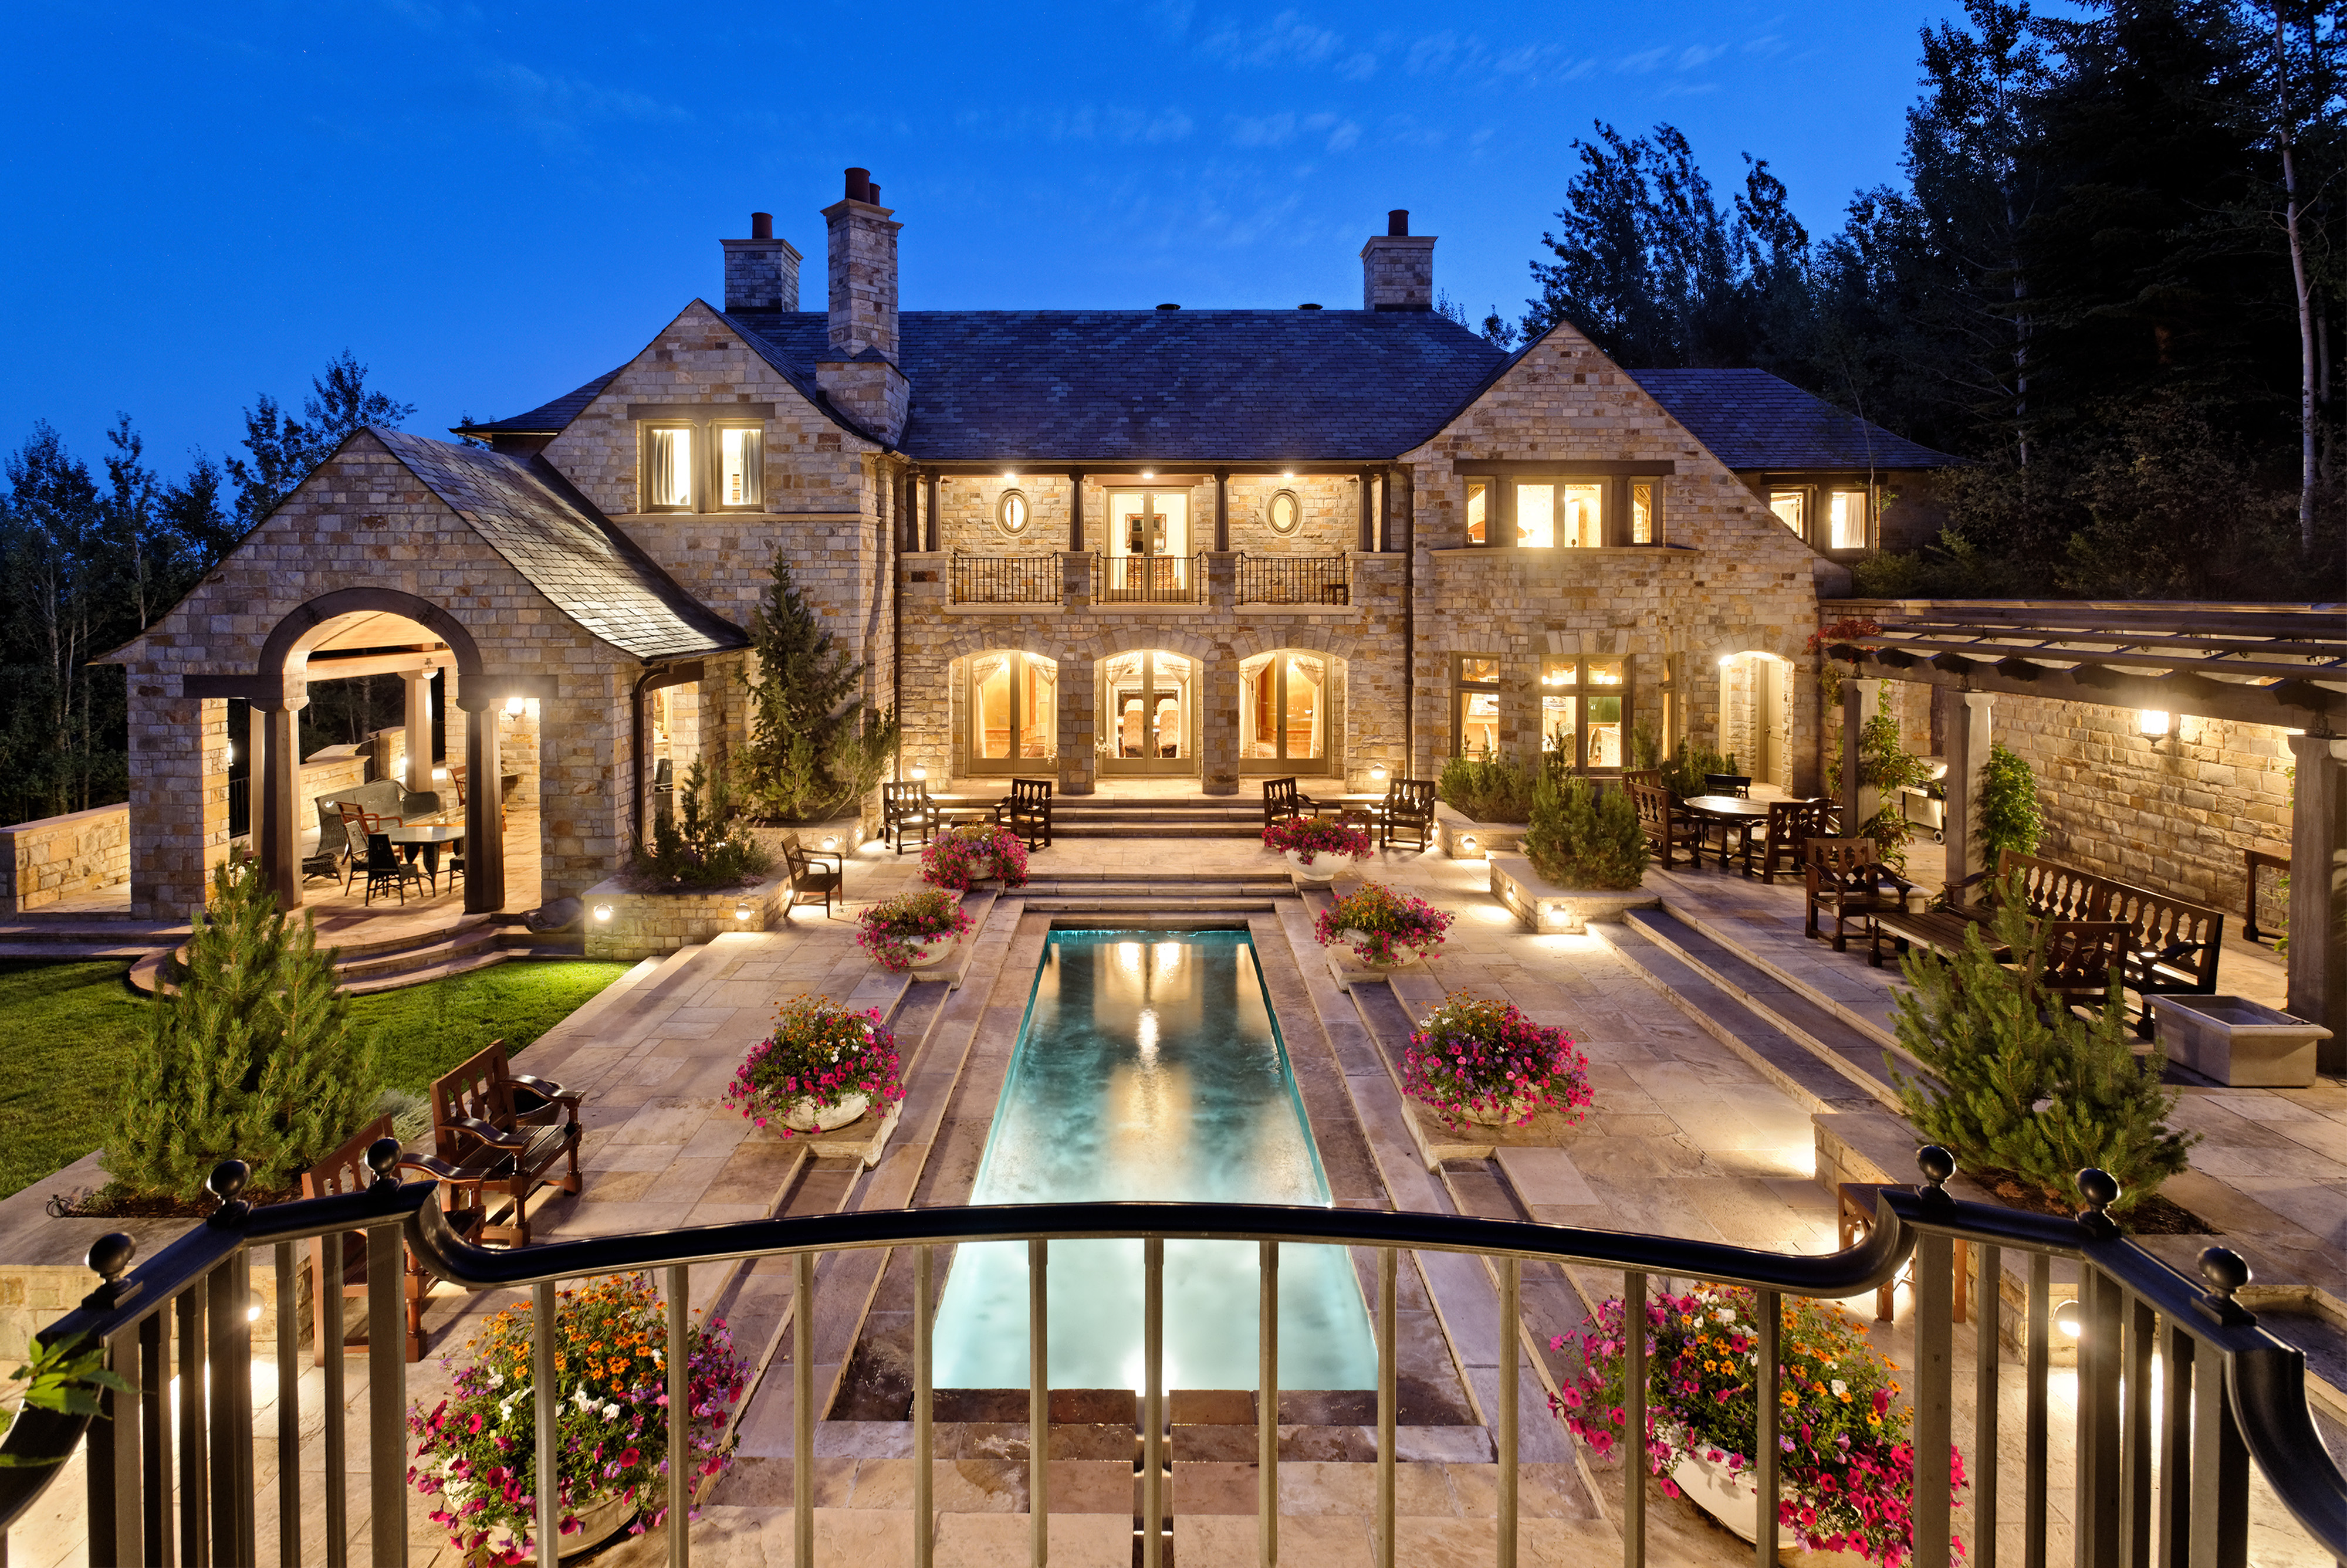 Download Luxury House Wallpapers HD Full HD Pictures [4000x2673 4000x2673